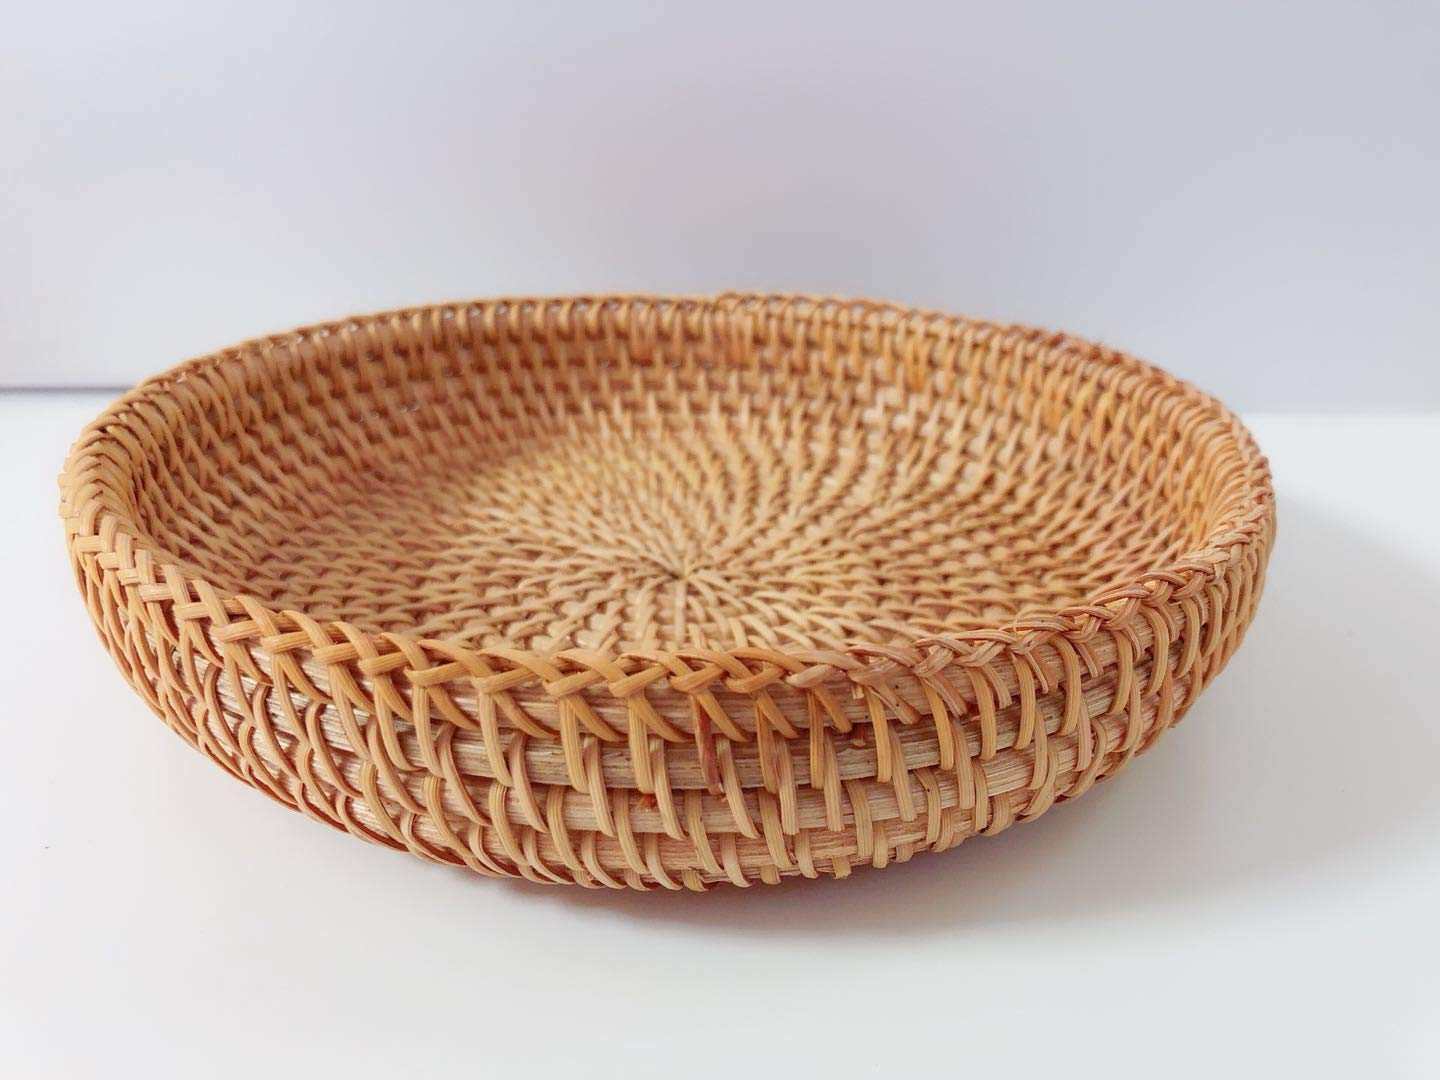 Rattan Basket Dried Fruit Basket Woven Basket Basket For Gifts Fruit Baskets Wicker Picnic Basket Wicker Basket Candy Basket 2019 Organizer Shallow Basket Gift Baskets For Women (2PCs wicker basekt) by TIMESFRIEND (Image #8)